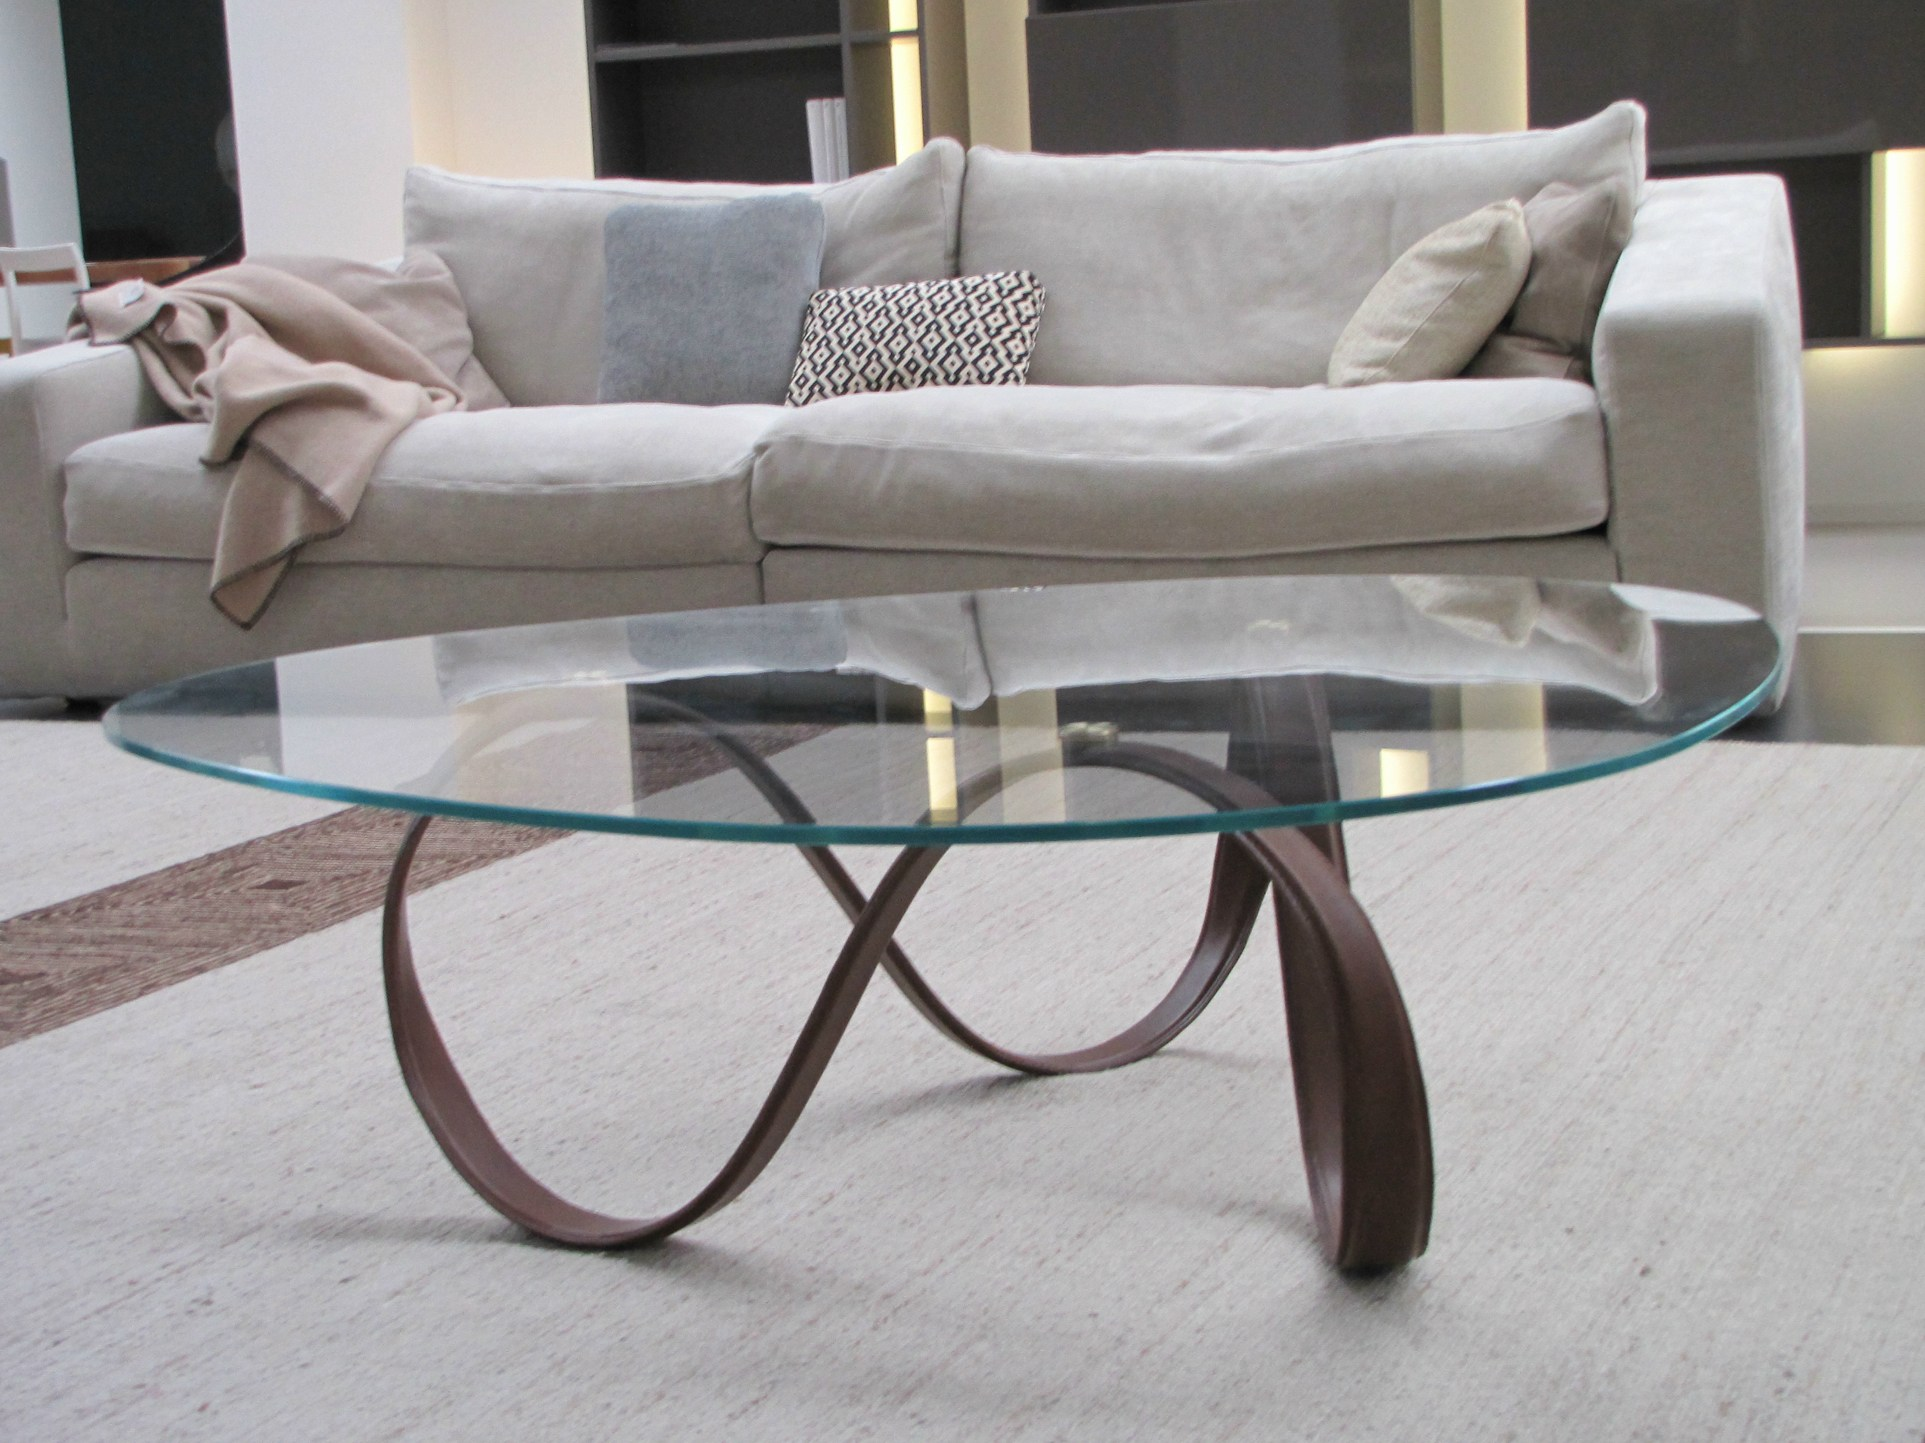 Side Table For Living Room. Blending In With Your Living Room  Sometimes coffee tables 30 Glass Coffee Tables that Bring Transparency to